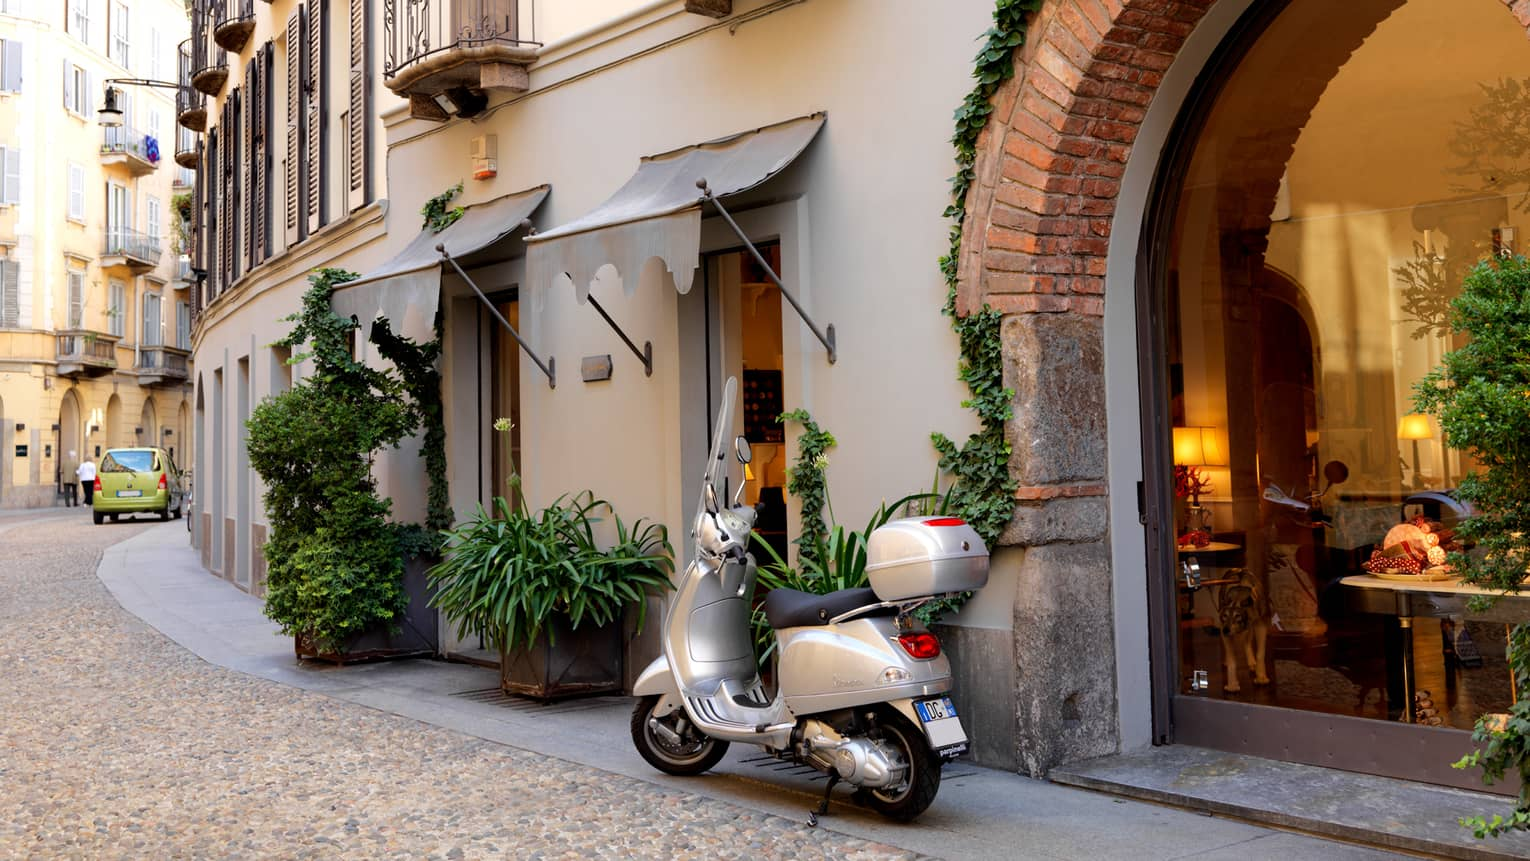 Silver moped motorcycle parked in front of brick archway in Milan's shopping district